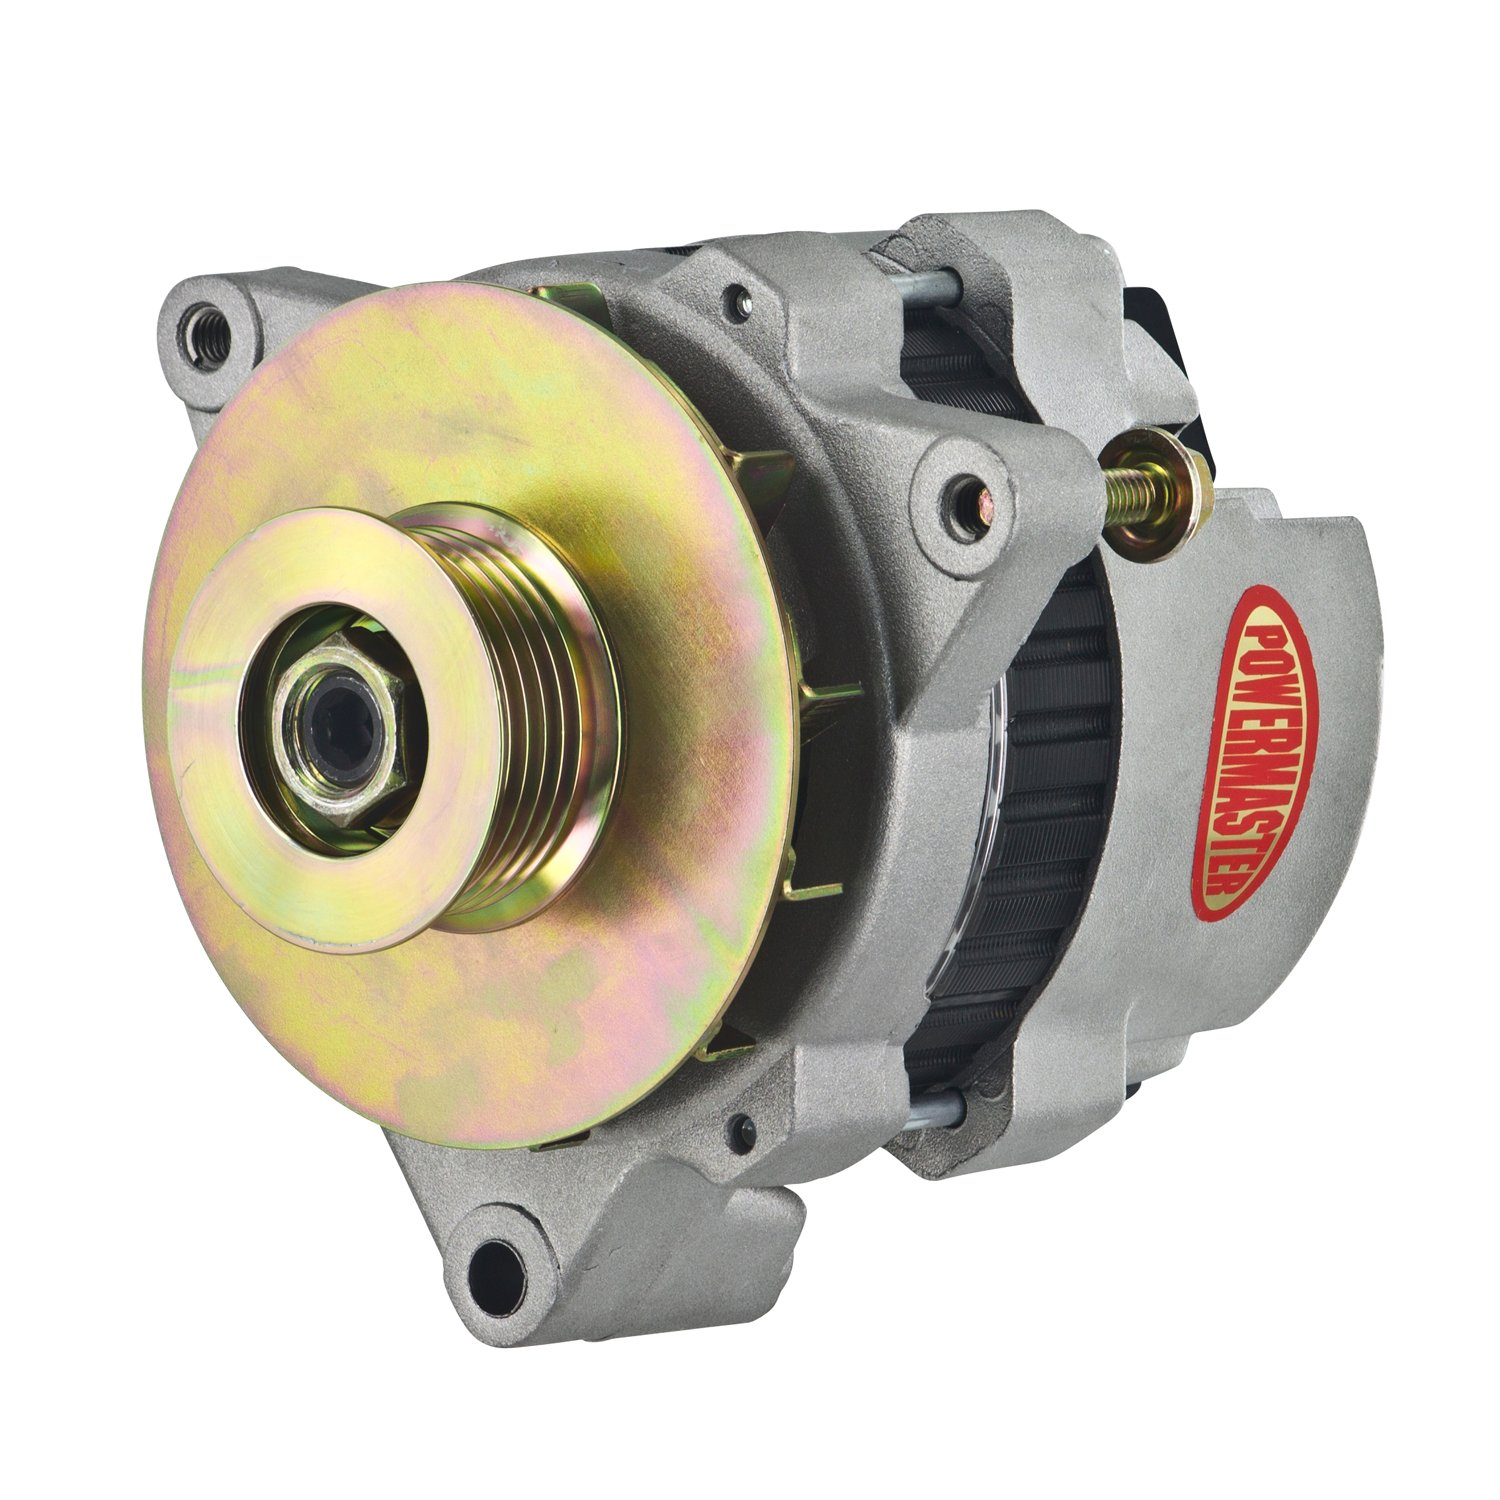 Powermaster 7472-104 - Powermaster GM CS121 Style 5x5 Compact Race Alternators